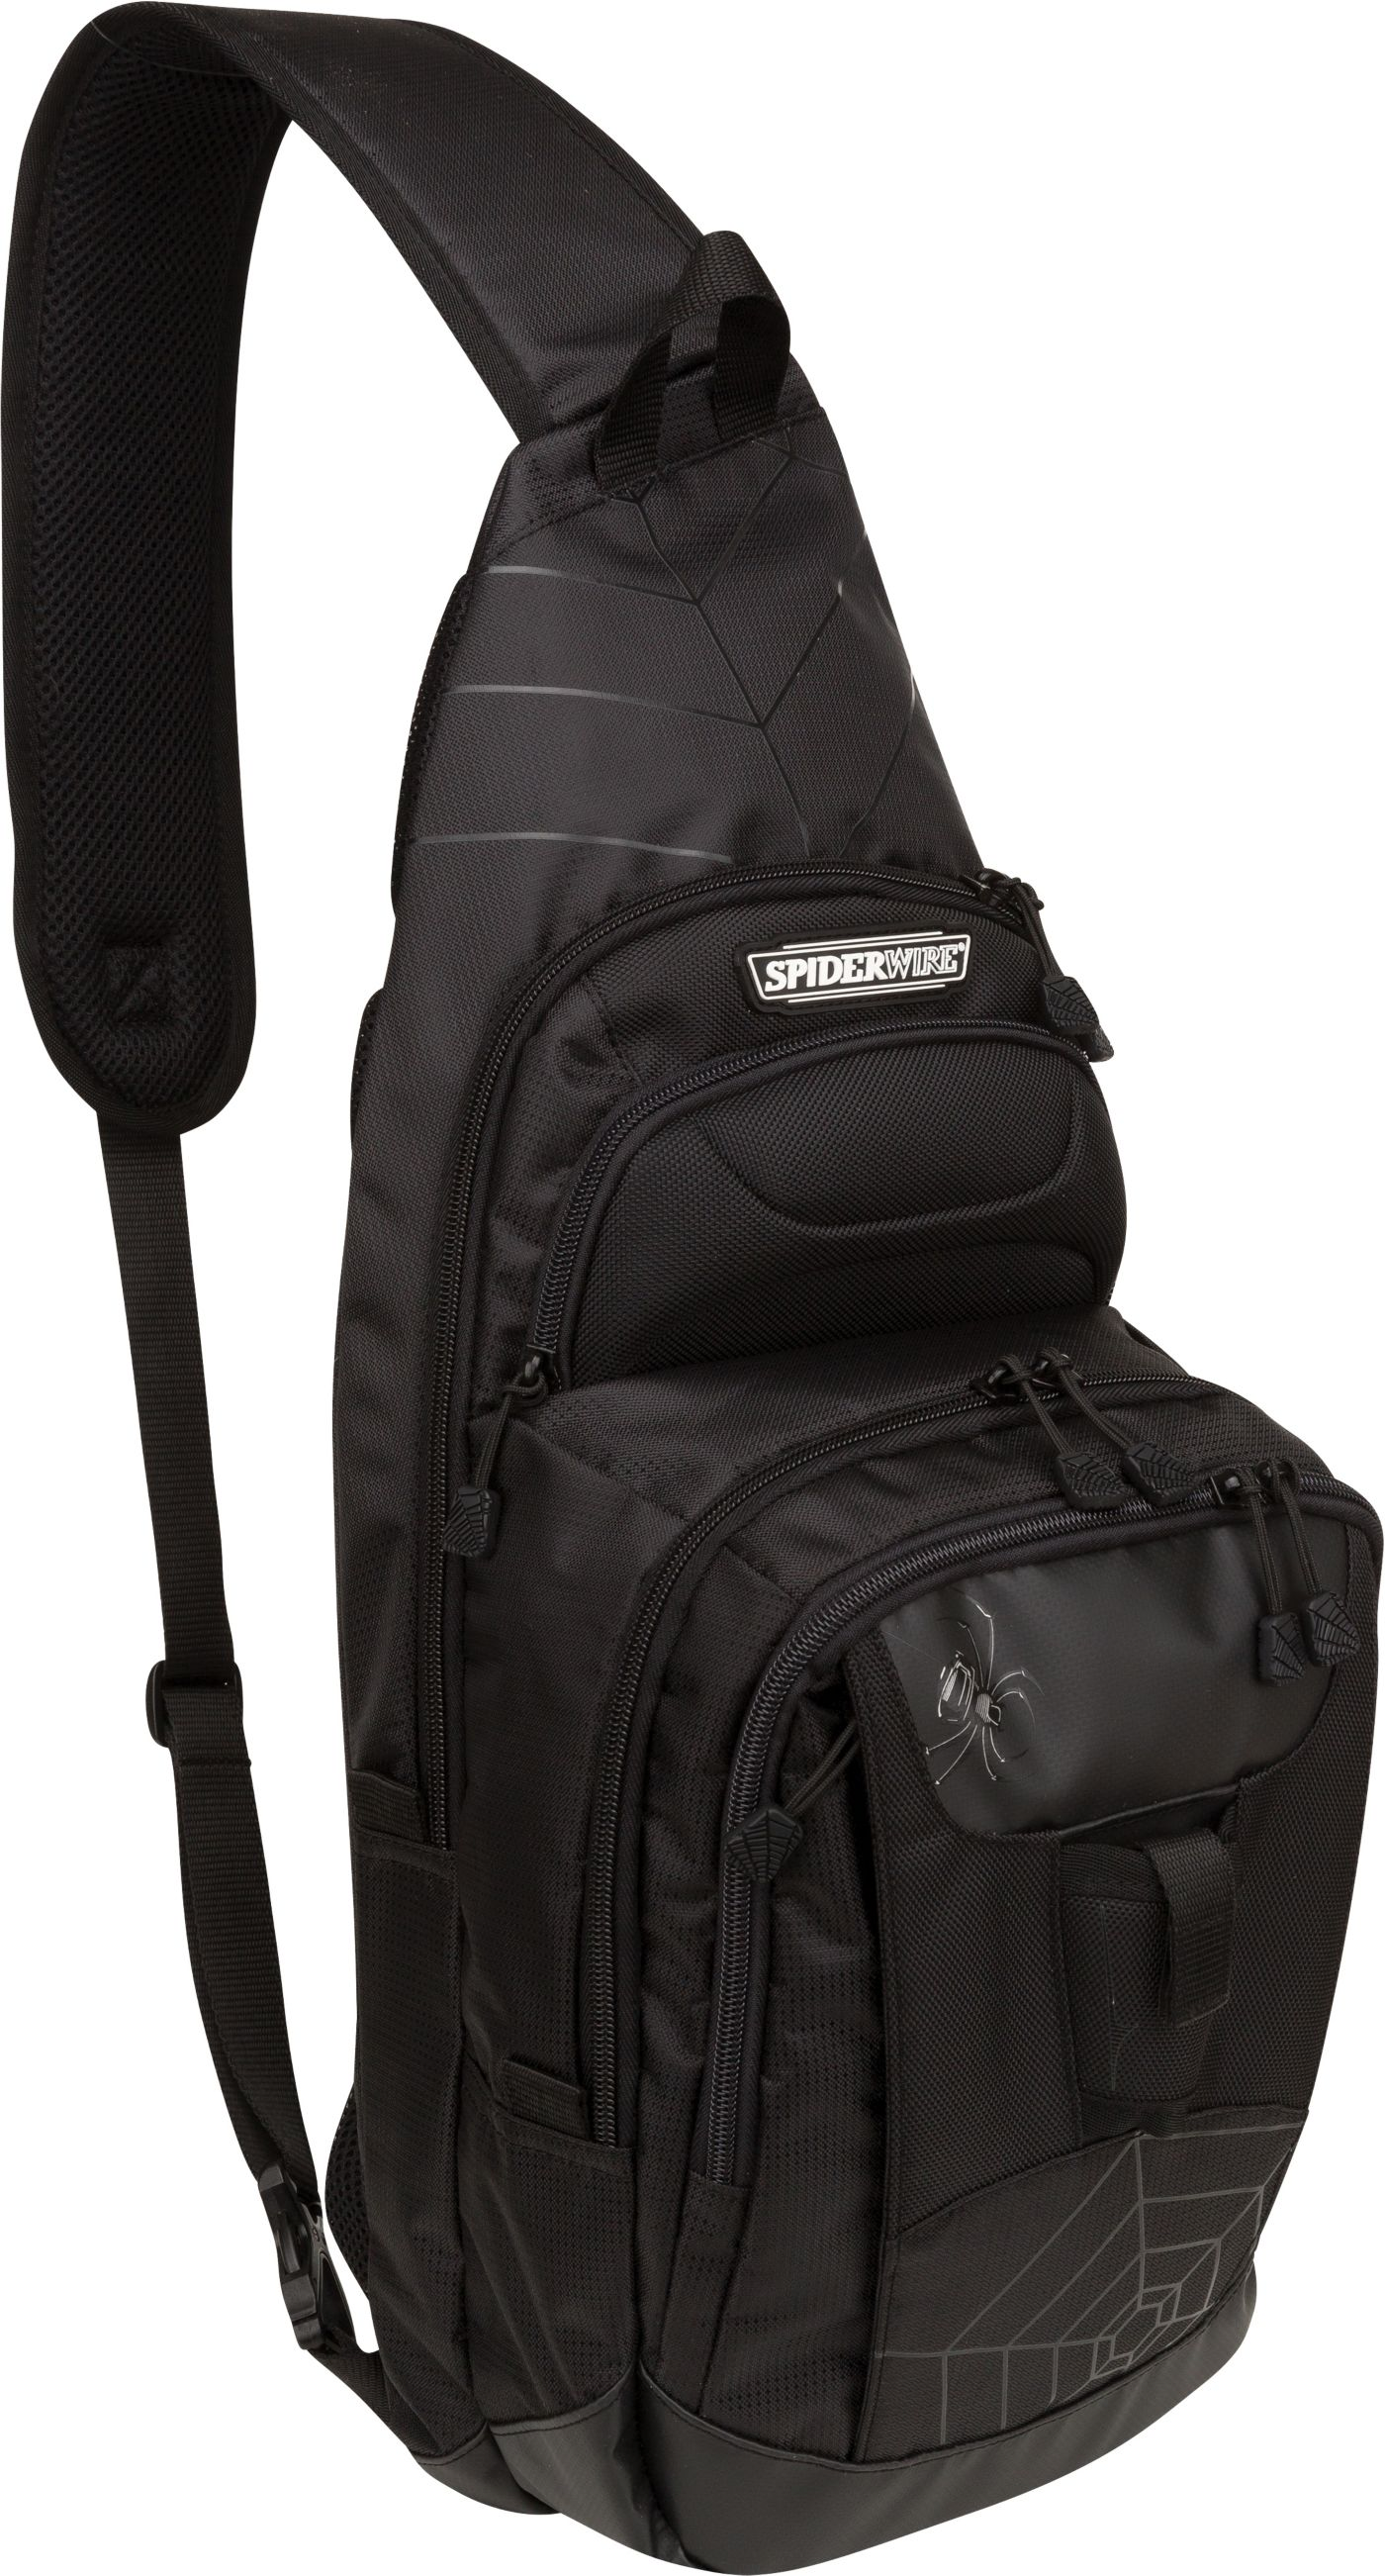 SpiderWire Sling Tackle Bag